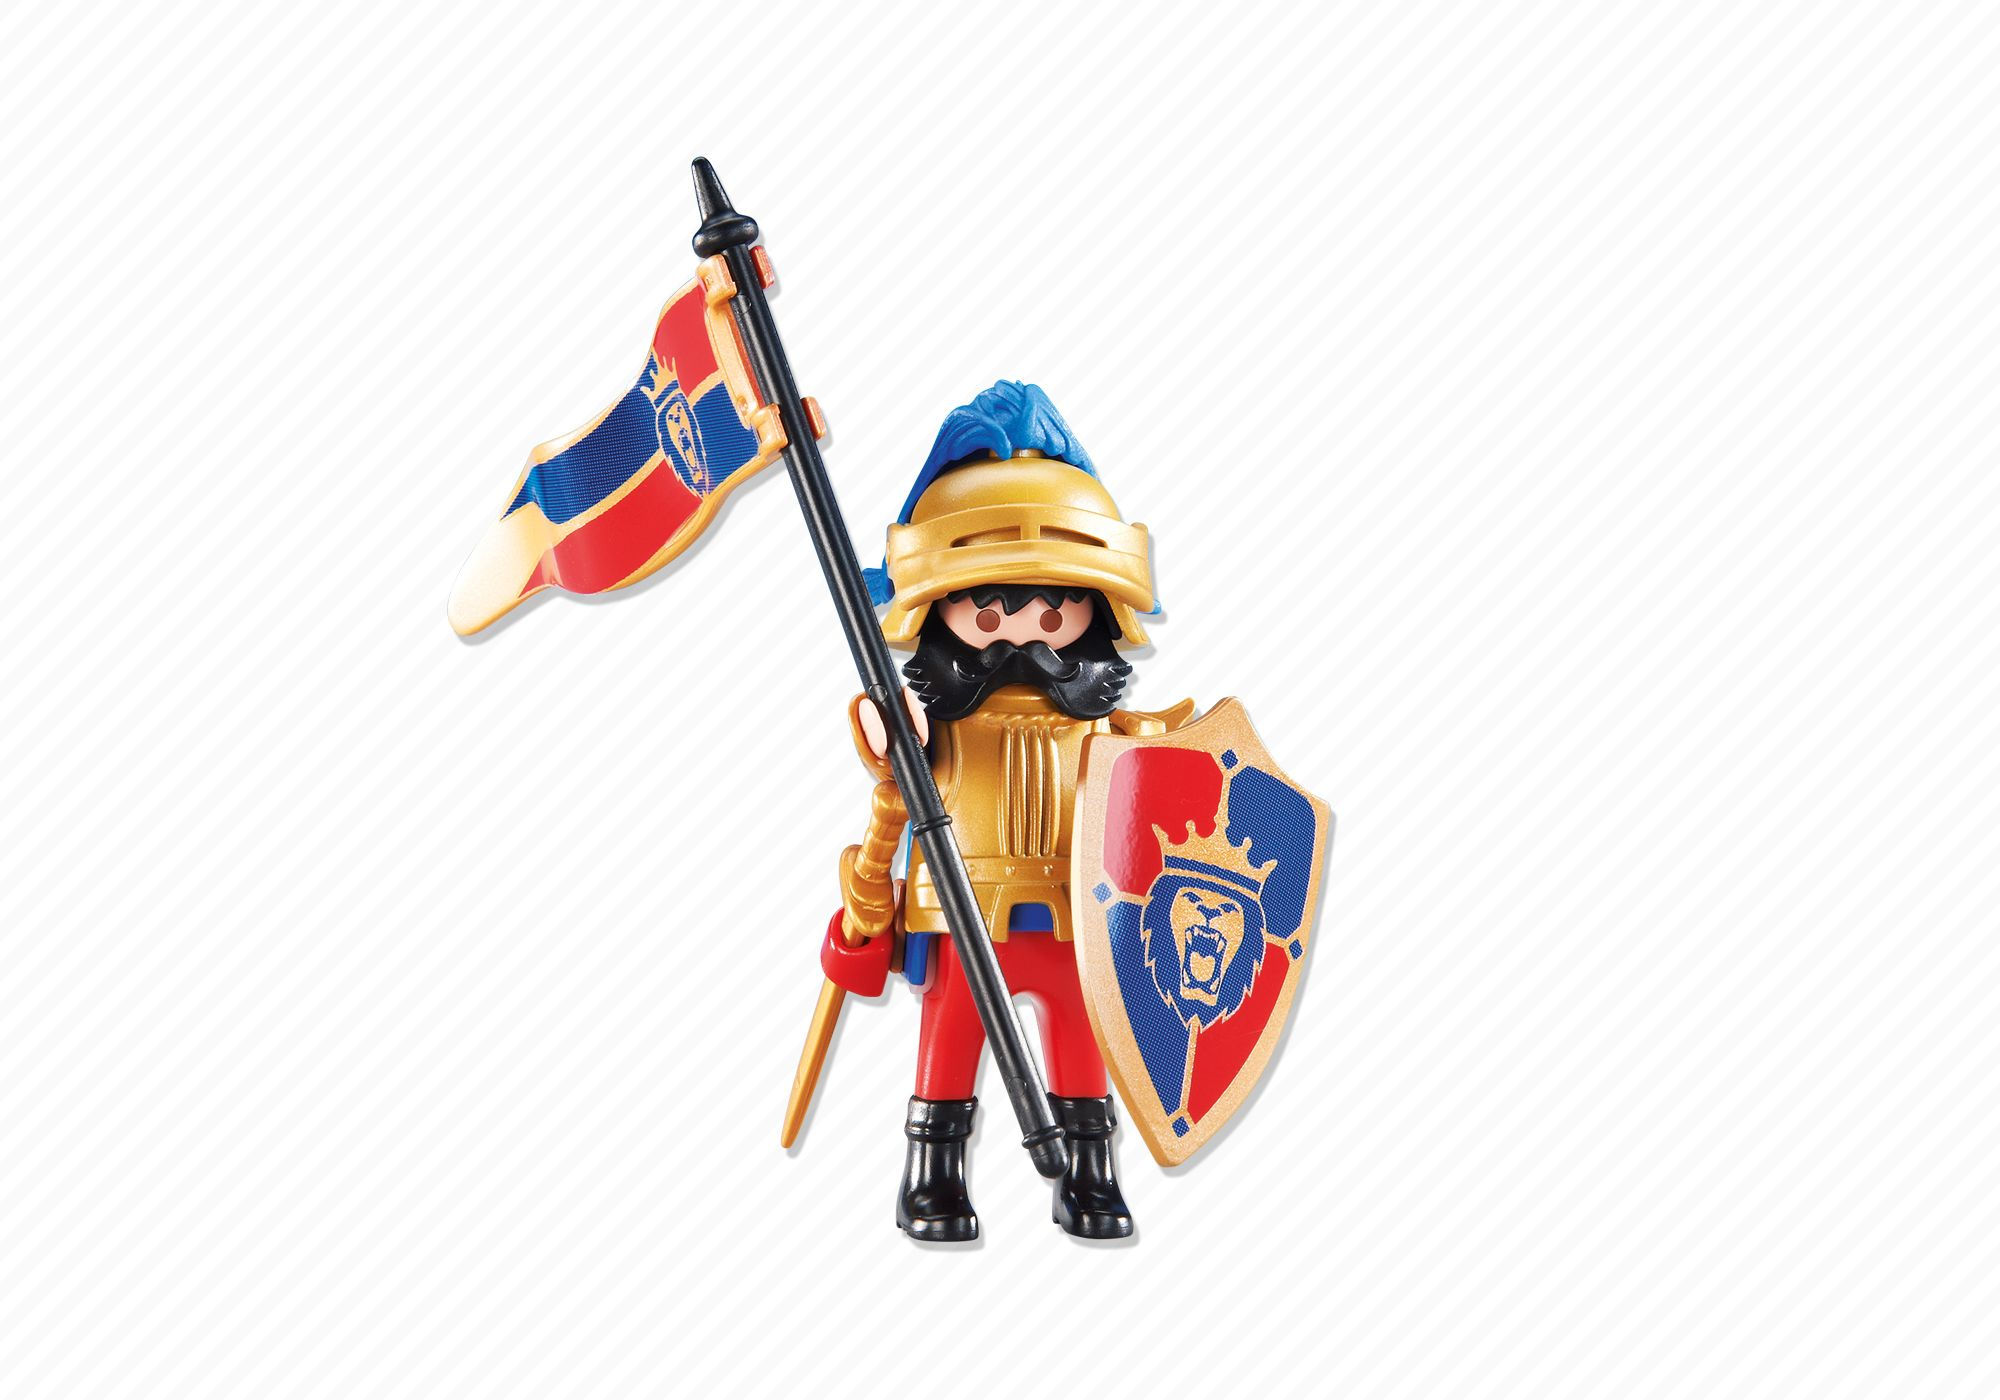 Playmobil set 6380 leader of the lion knights klickypedia for Playmobil caballeros